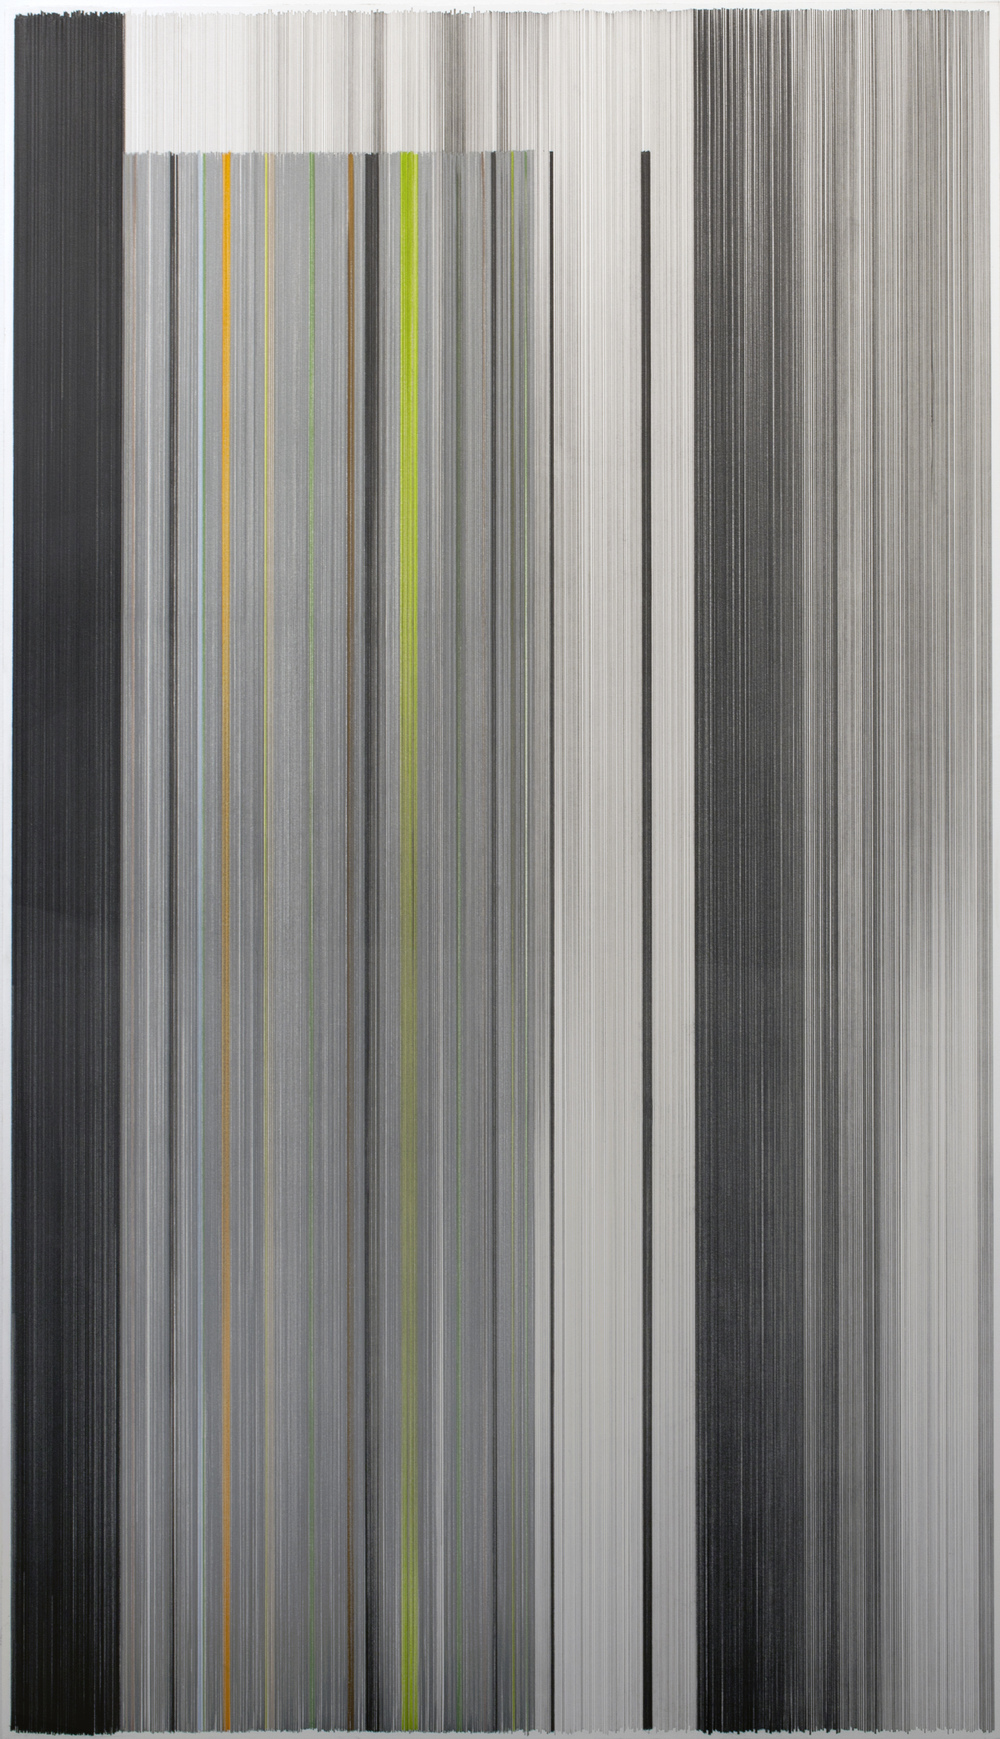 unfold 13   2016   graphite & colored pencil on mat board   34 by 59 inches